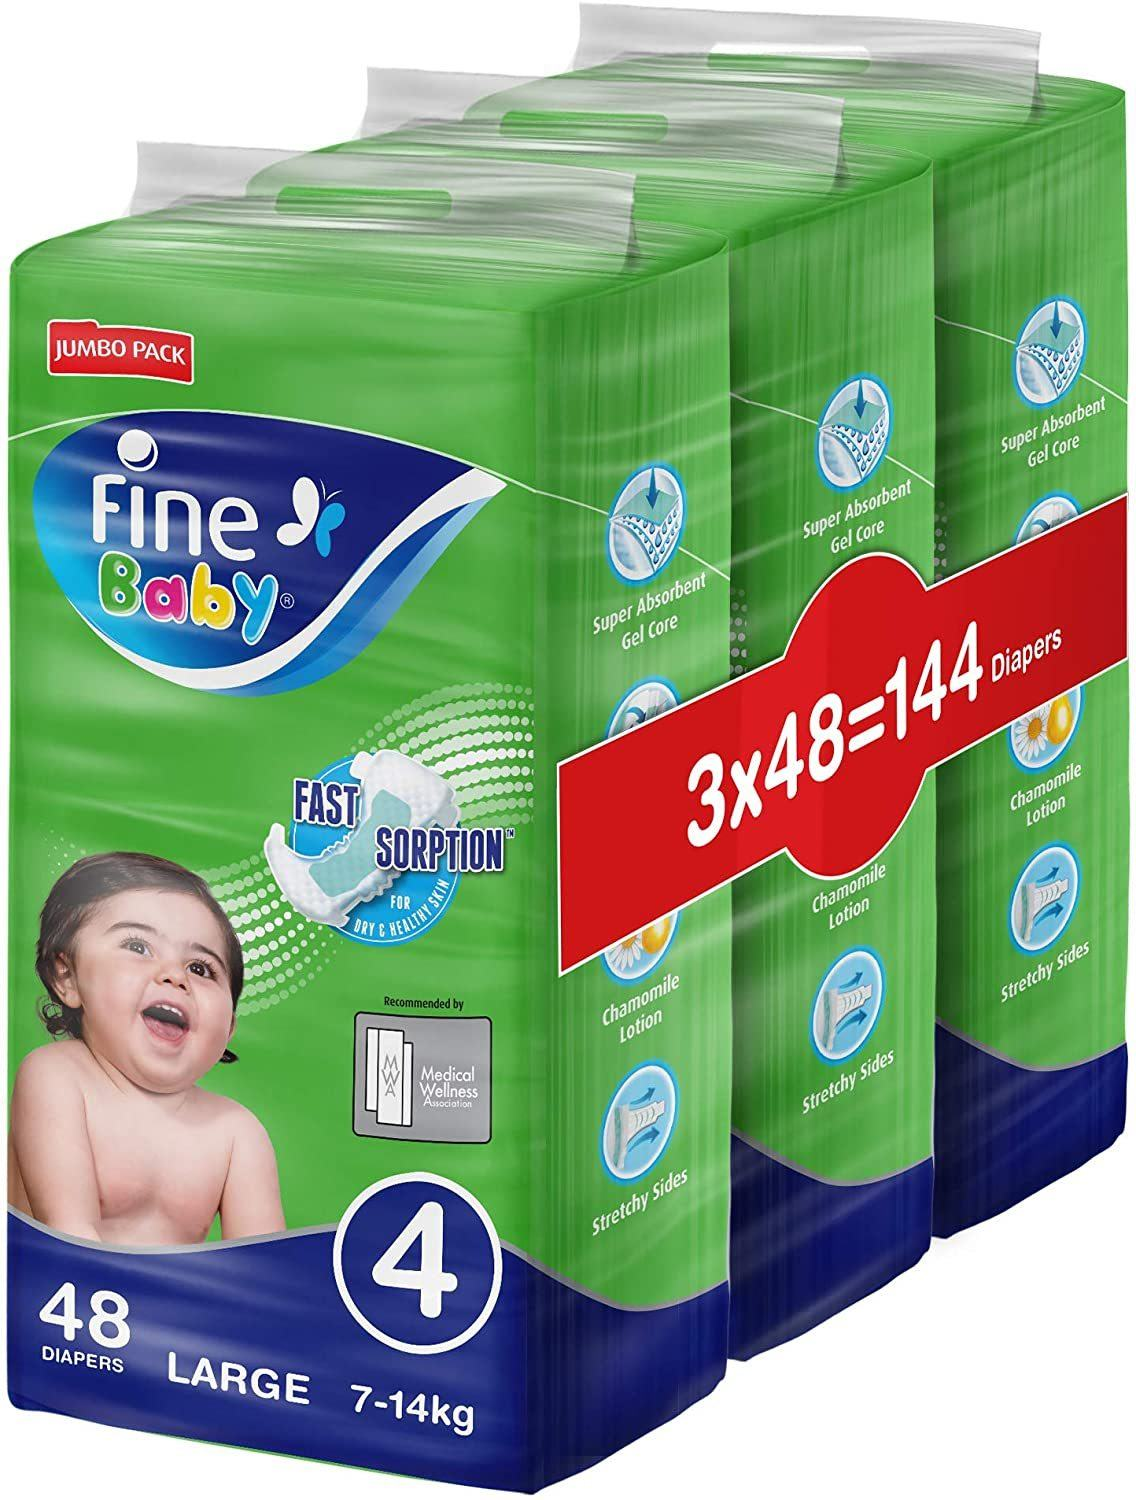 Fine Baby Super Dry - Smart Lock, Large 7-14Kgs, Dual Mega Pack (144 Diapers)